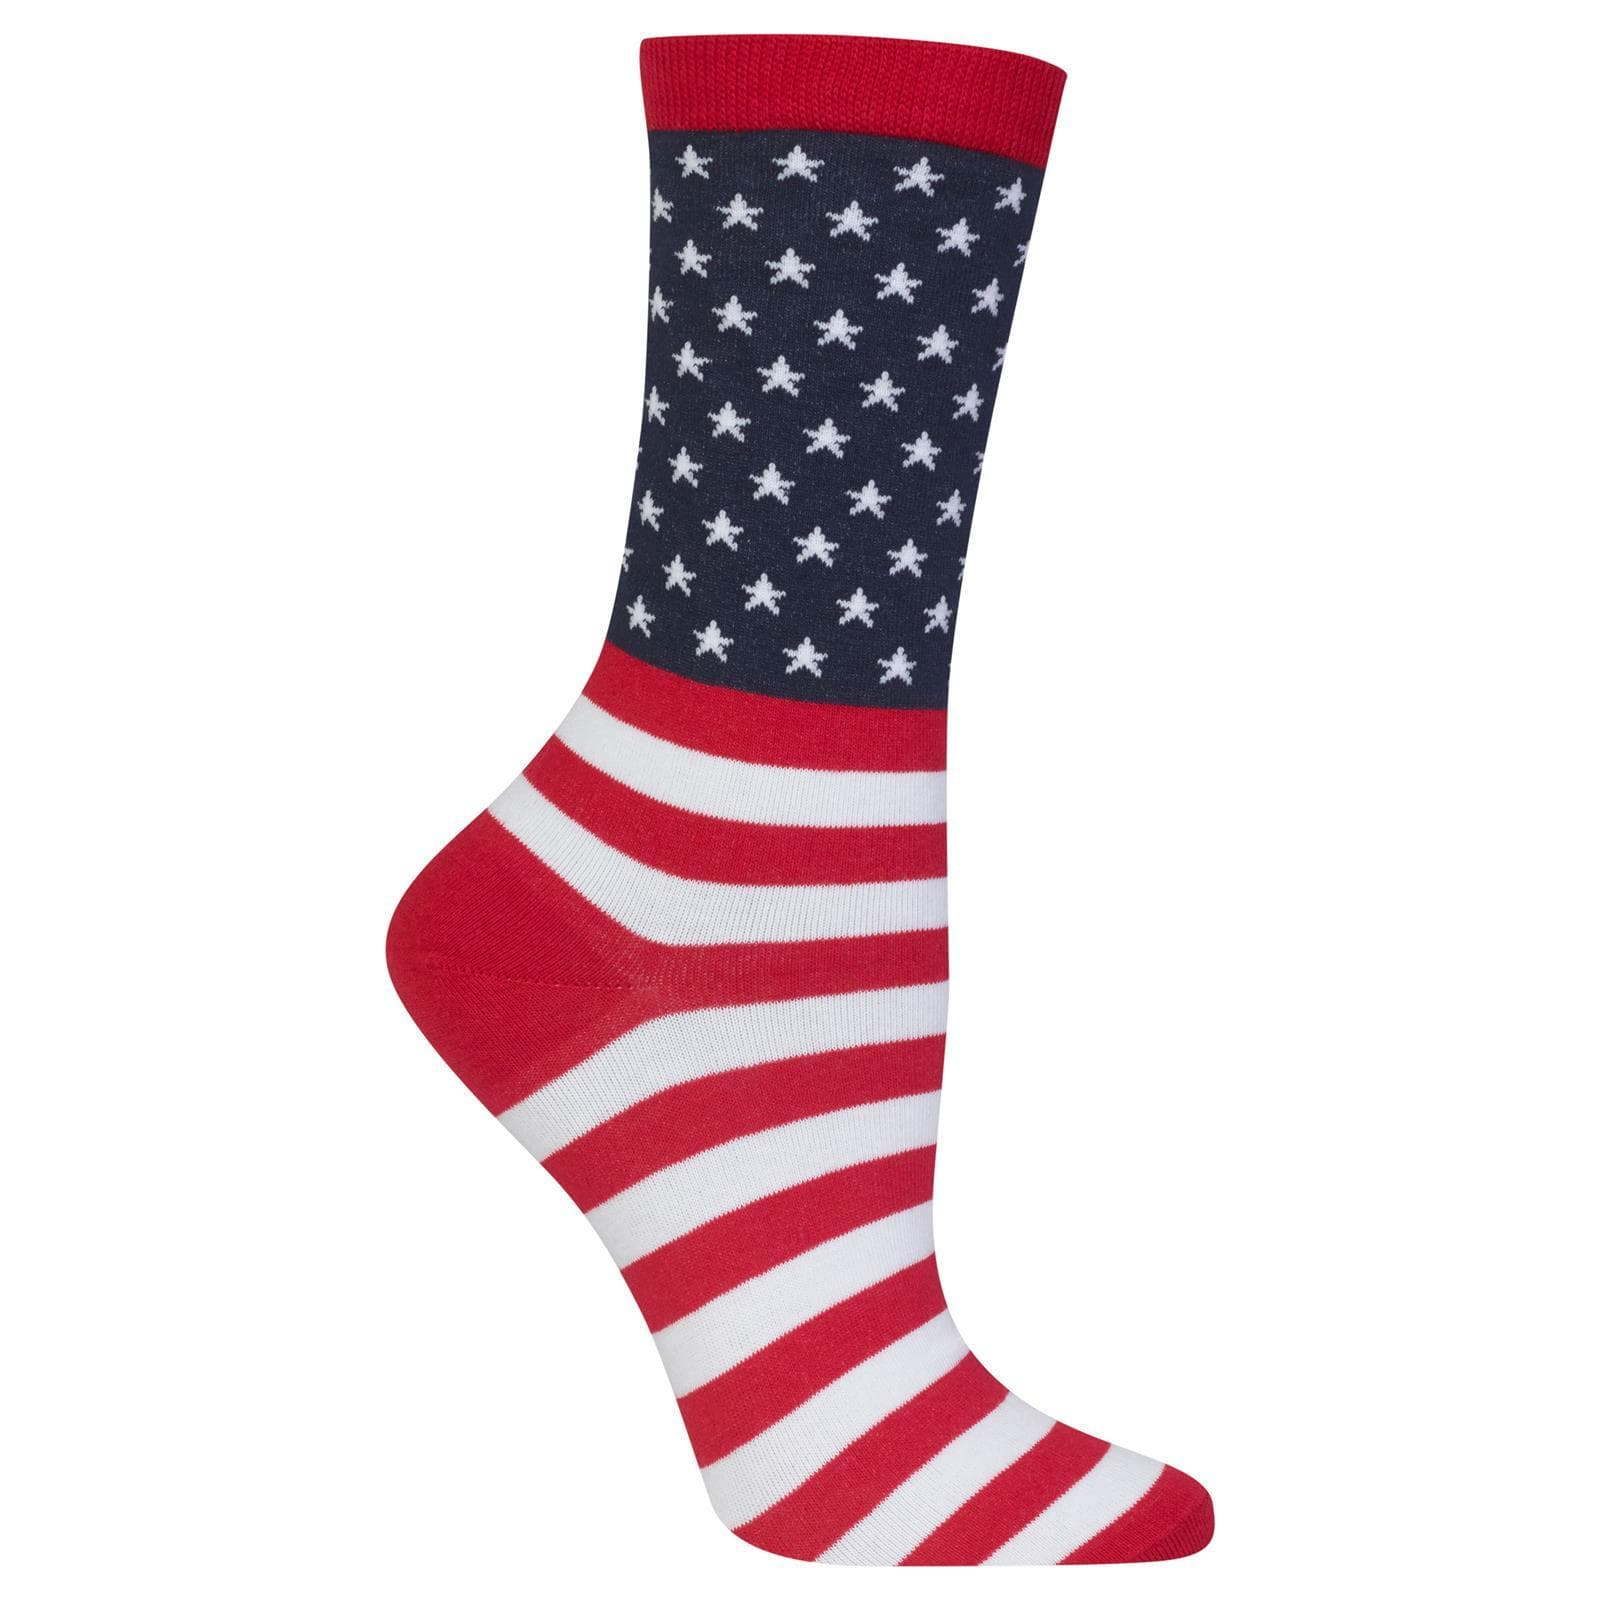 Starry Flag Socks Women's Crew Sock red